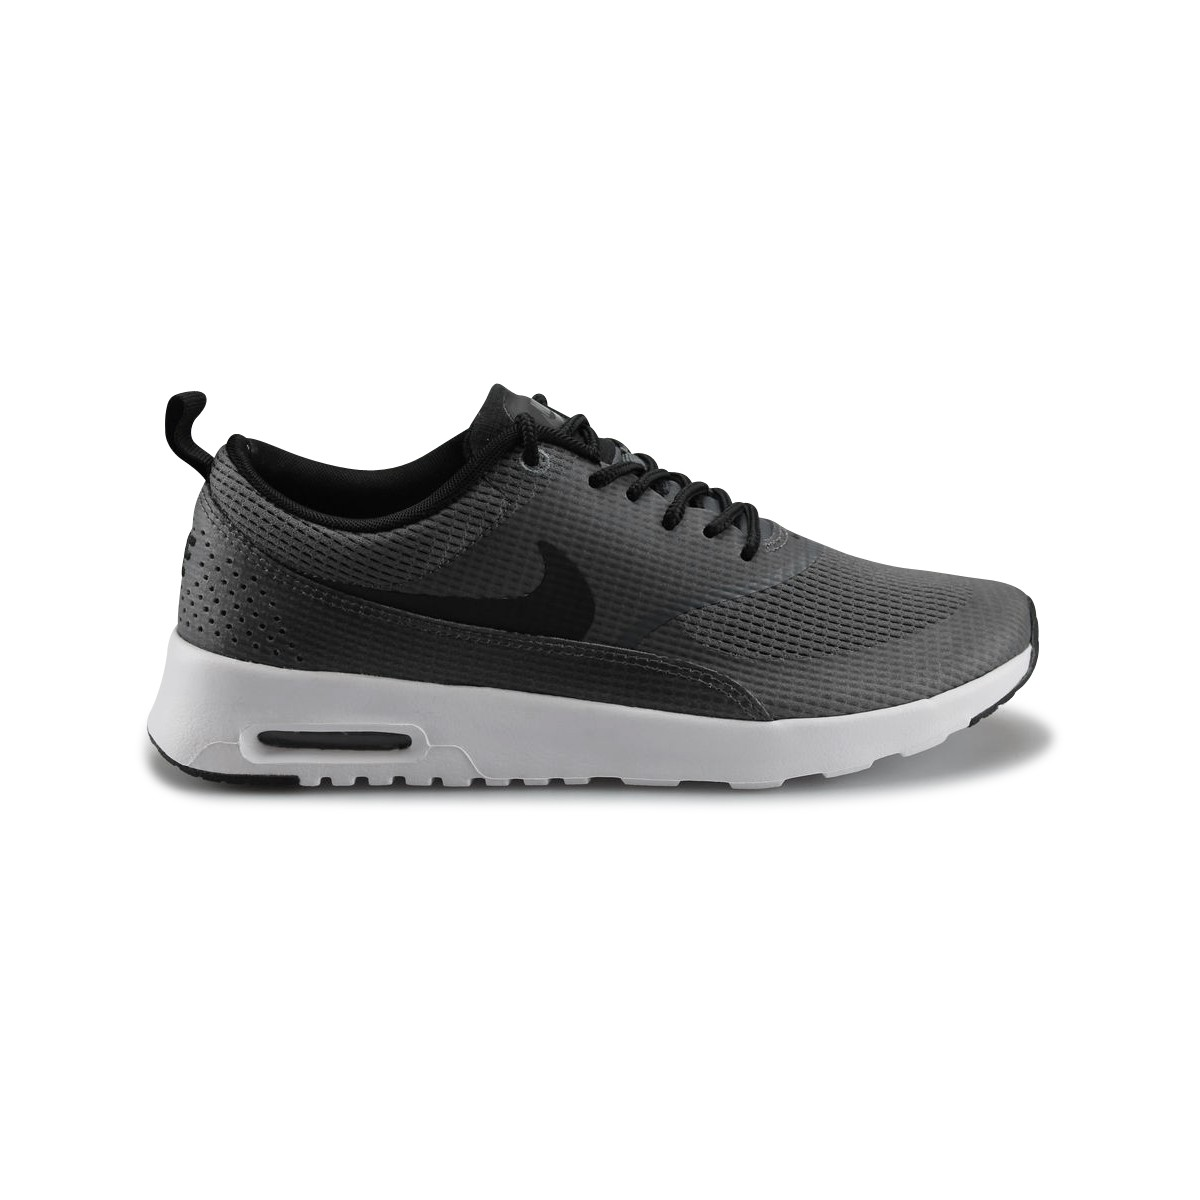 Nike Air Max Thea Gris Noir 819639 001 | Street Shoes Addict